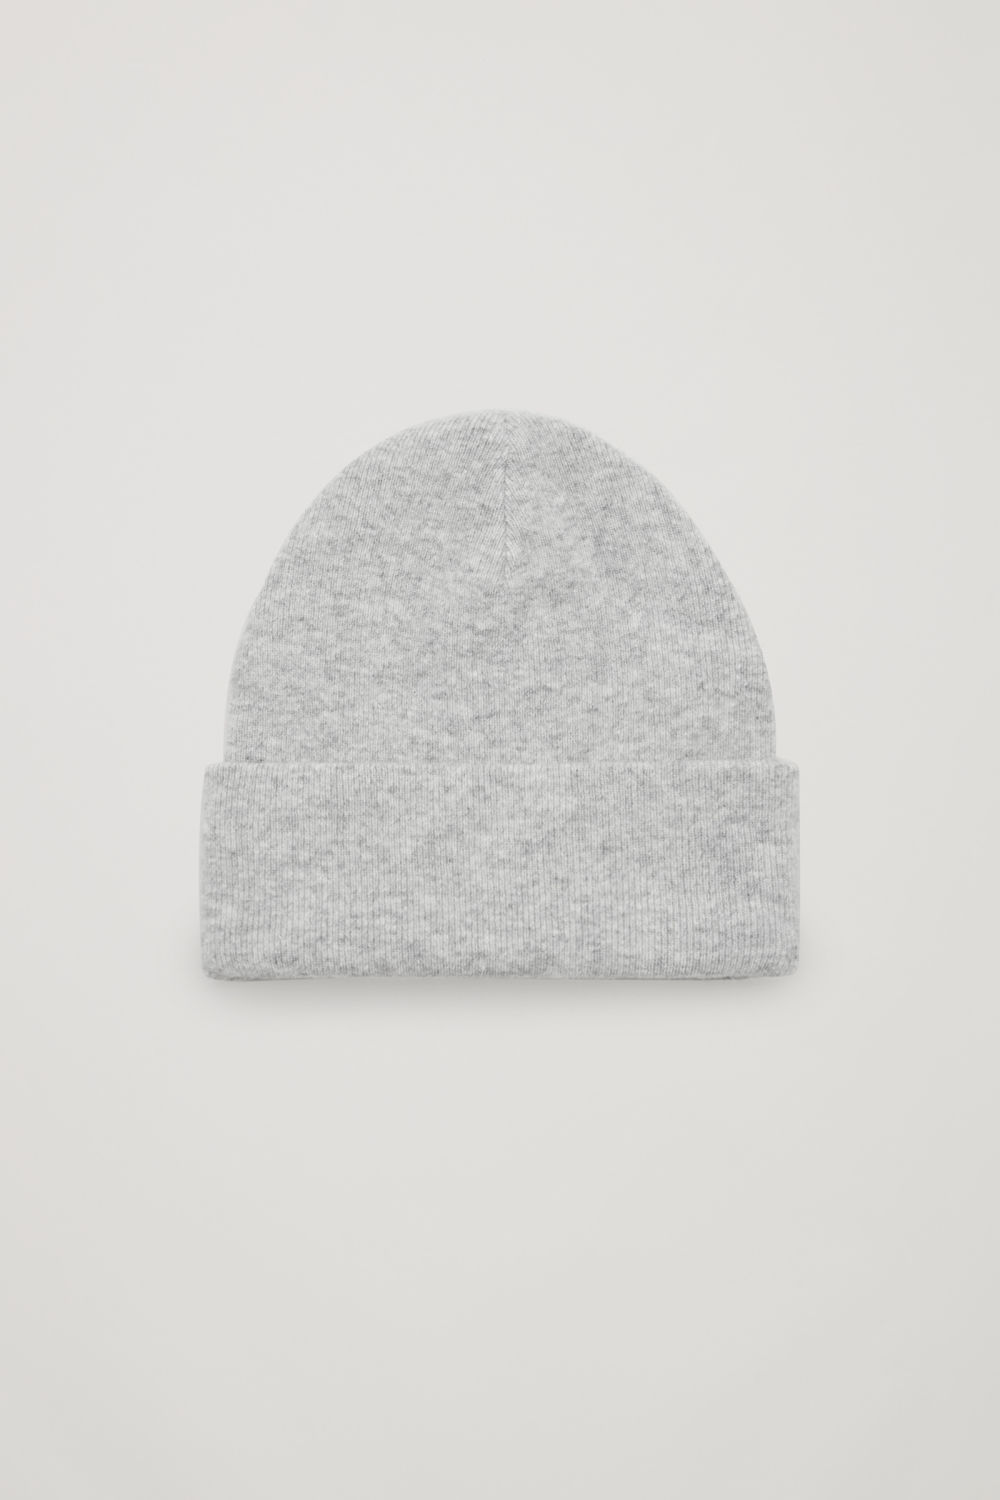 코스 COS OVERSIZED HAT,Grey melange